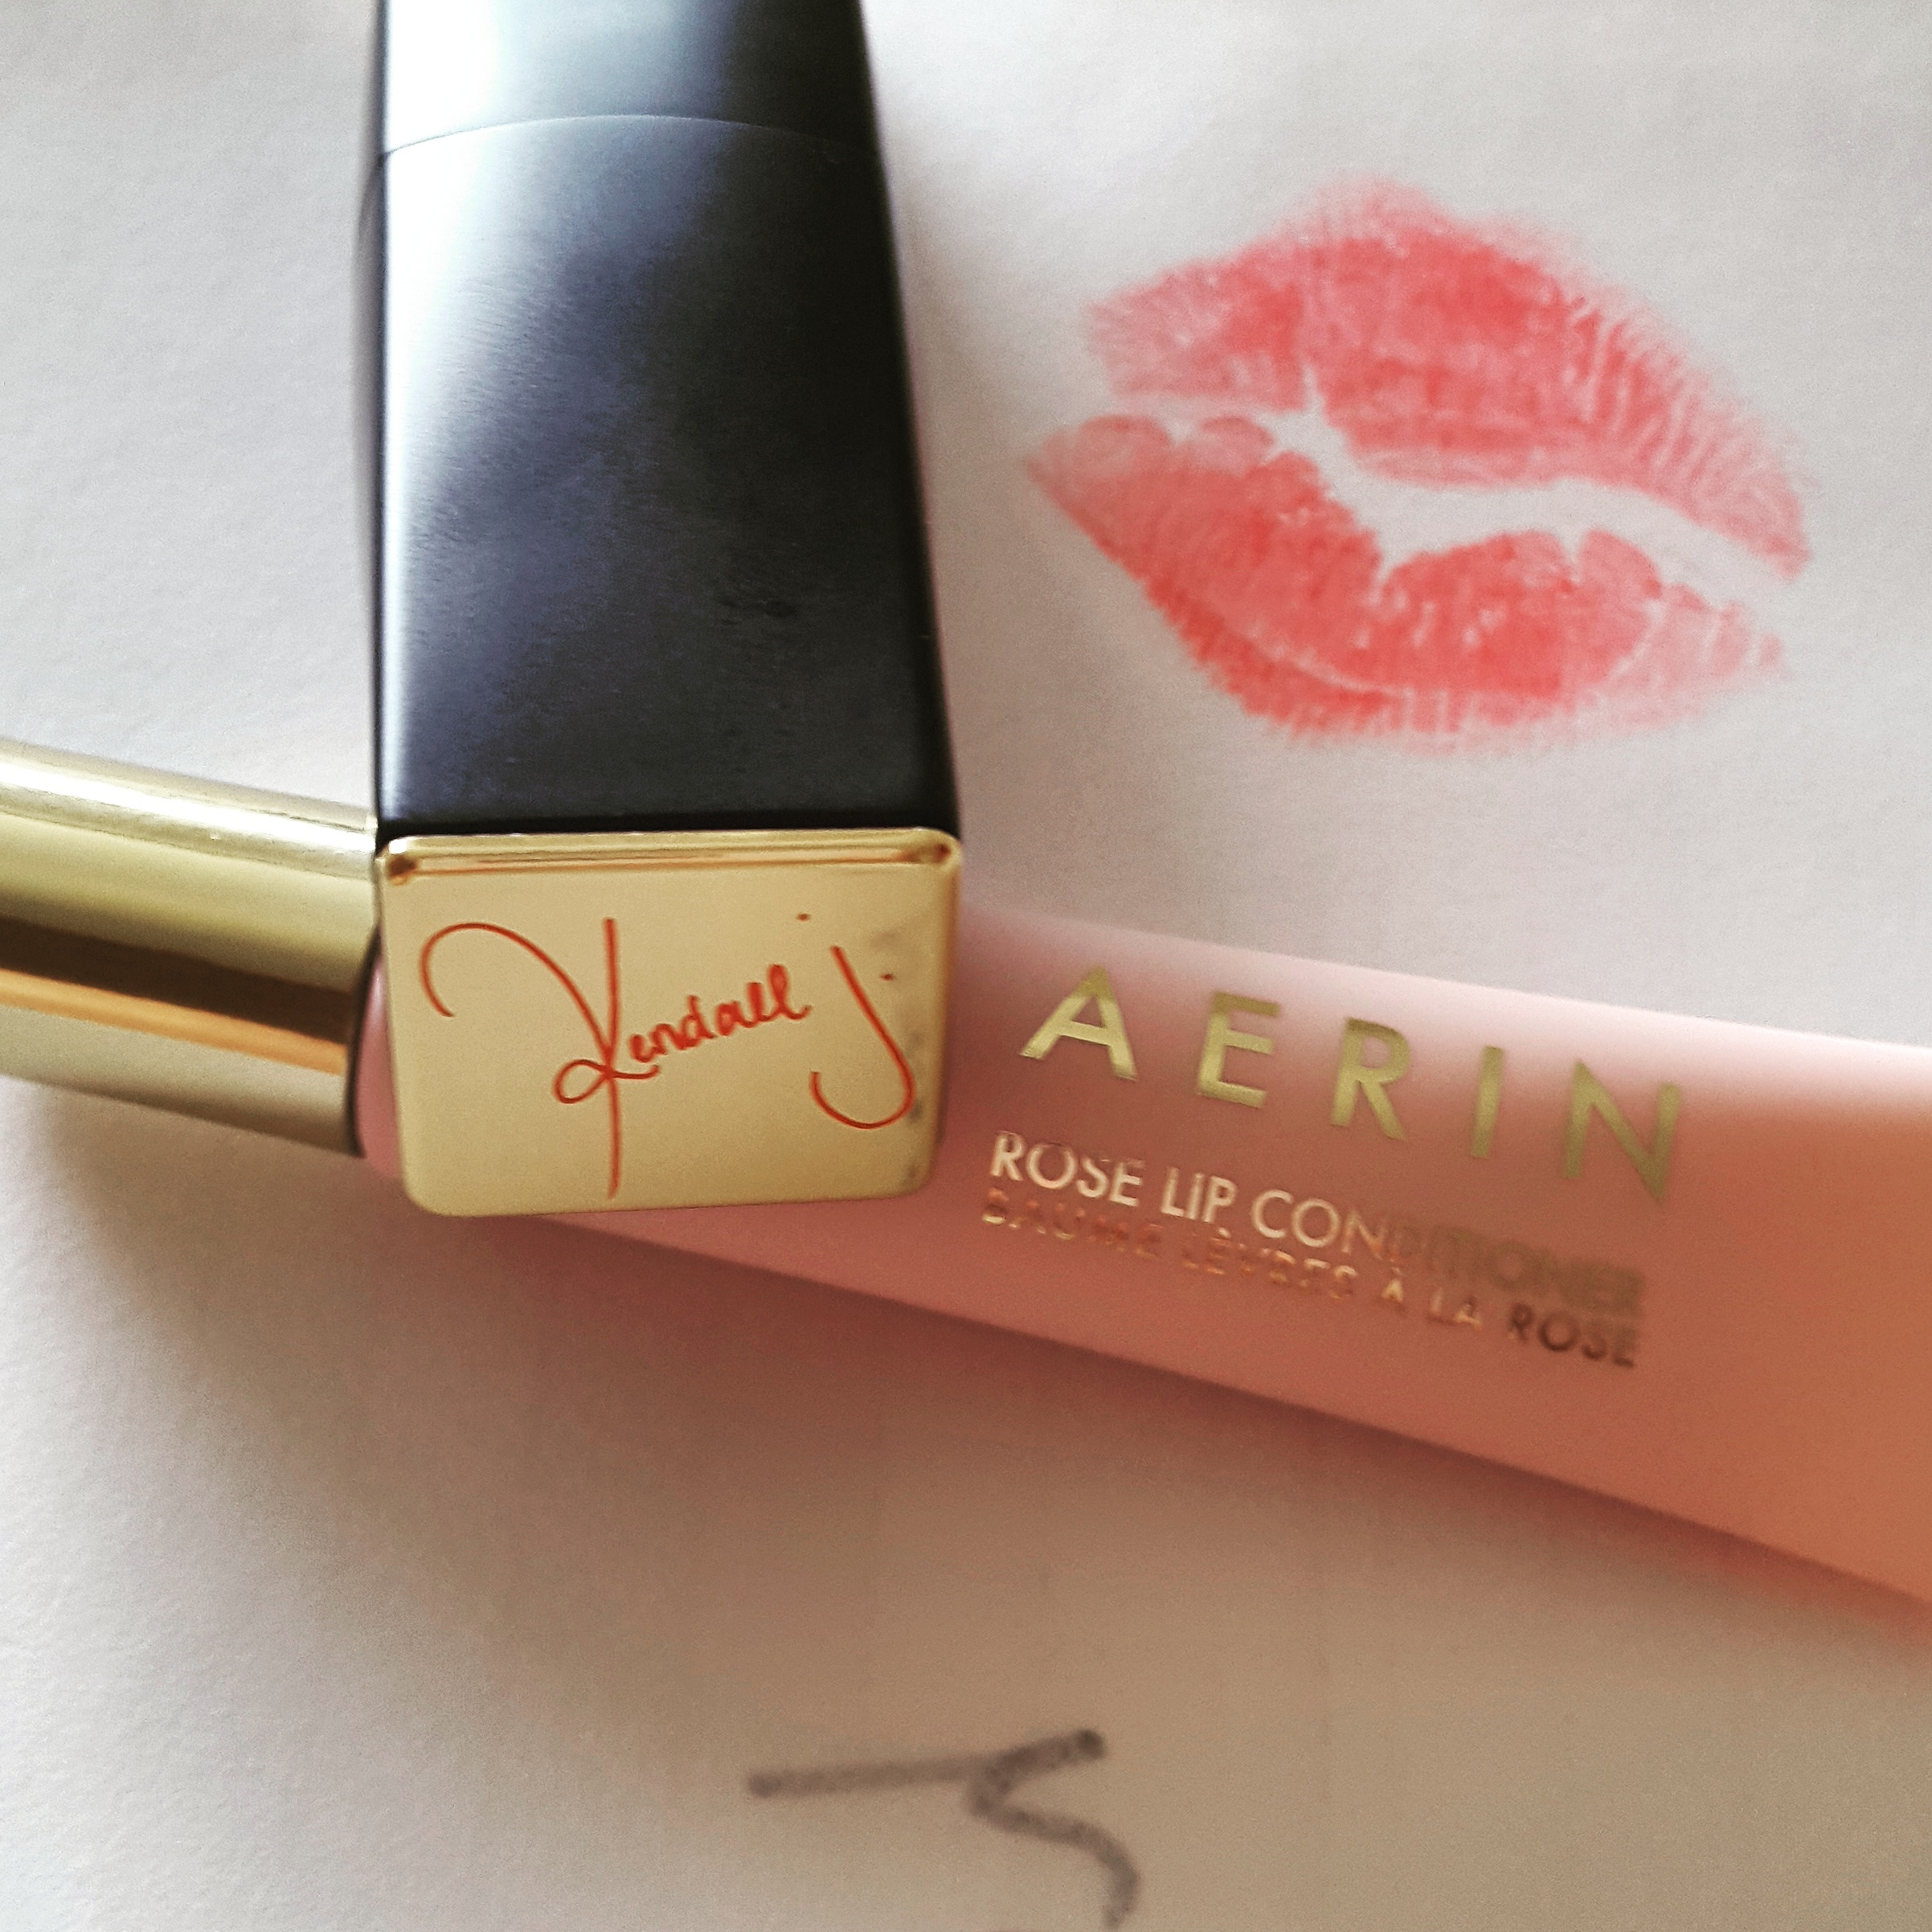 A limited edition lipstick by Kendall Jenner & Estee Lauder, and my favourite lip gloss by Aerin.